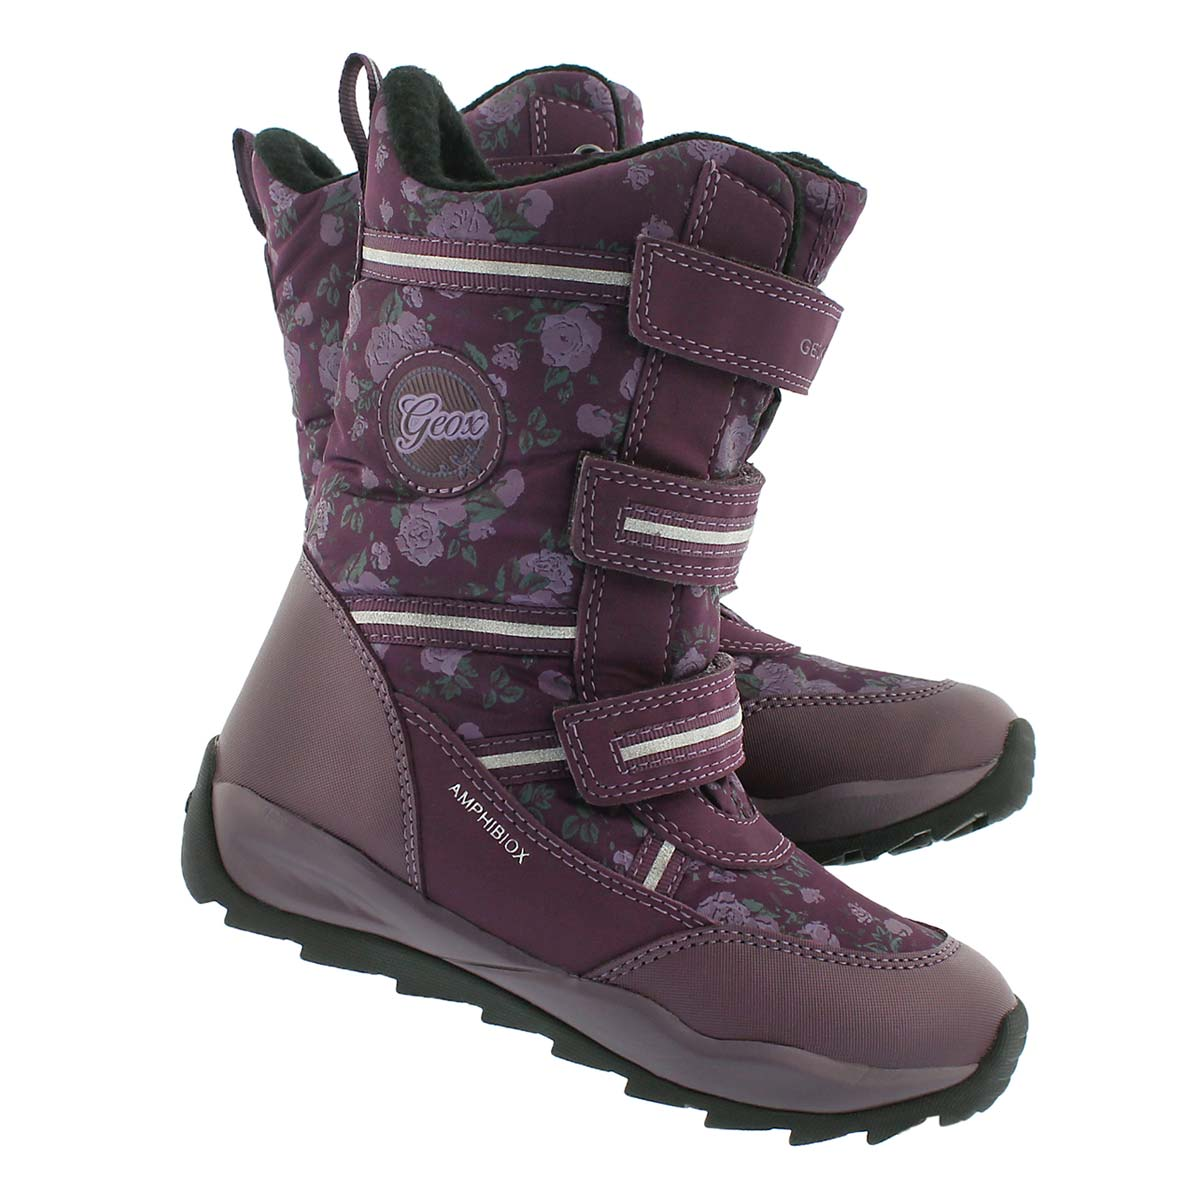 Grls Orizont dk purple winter boot